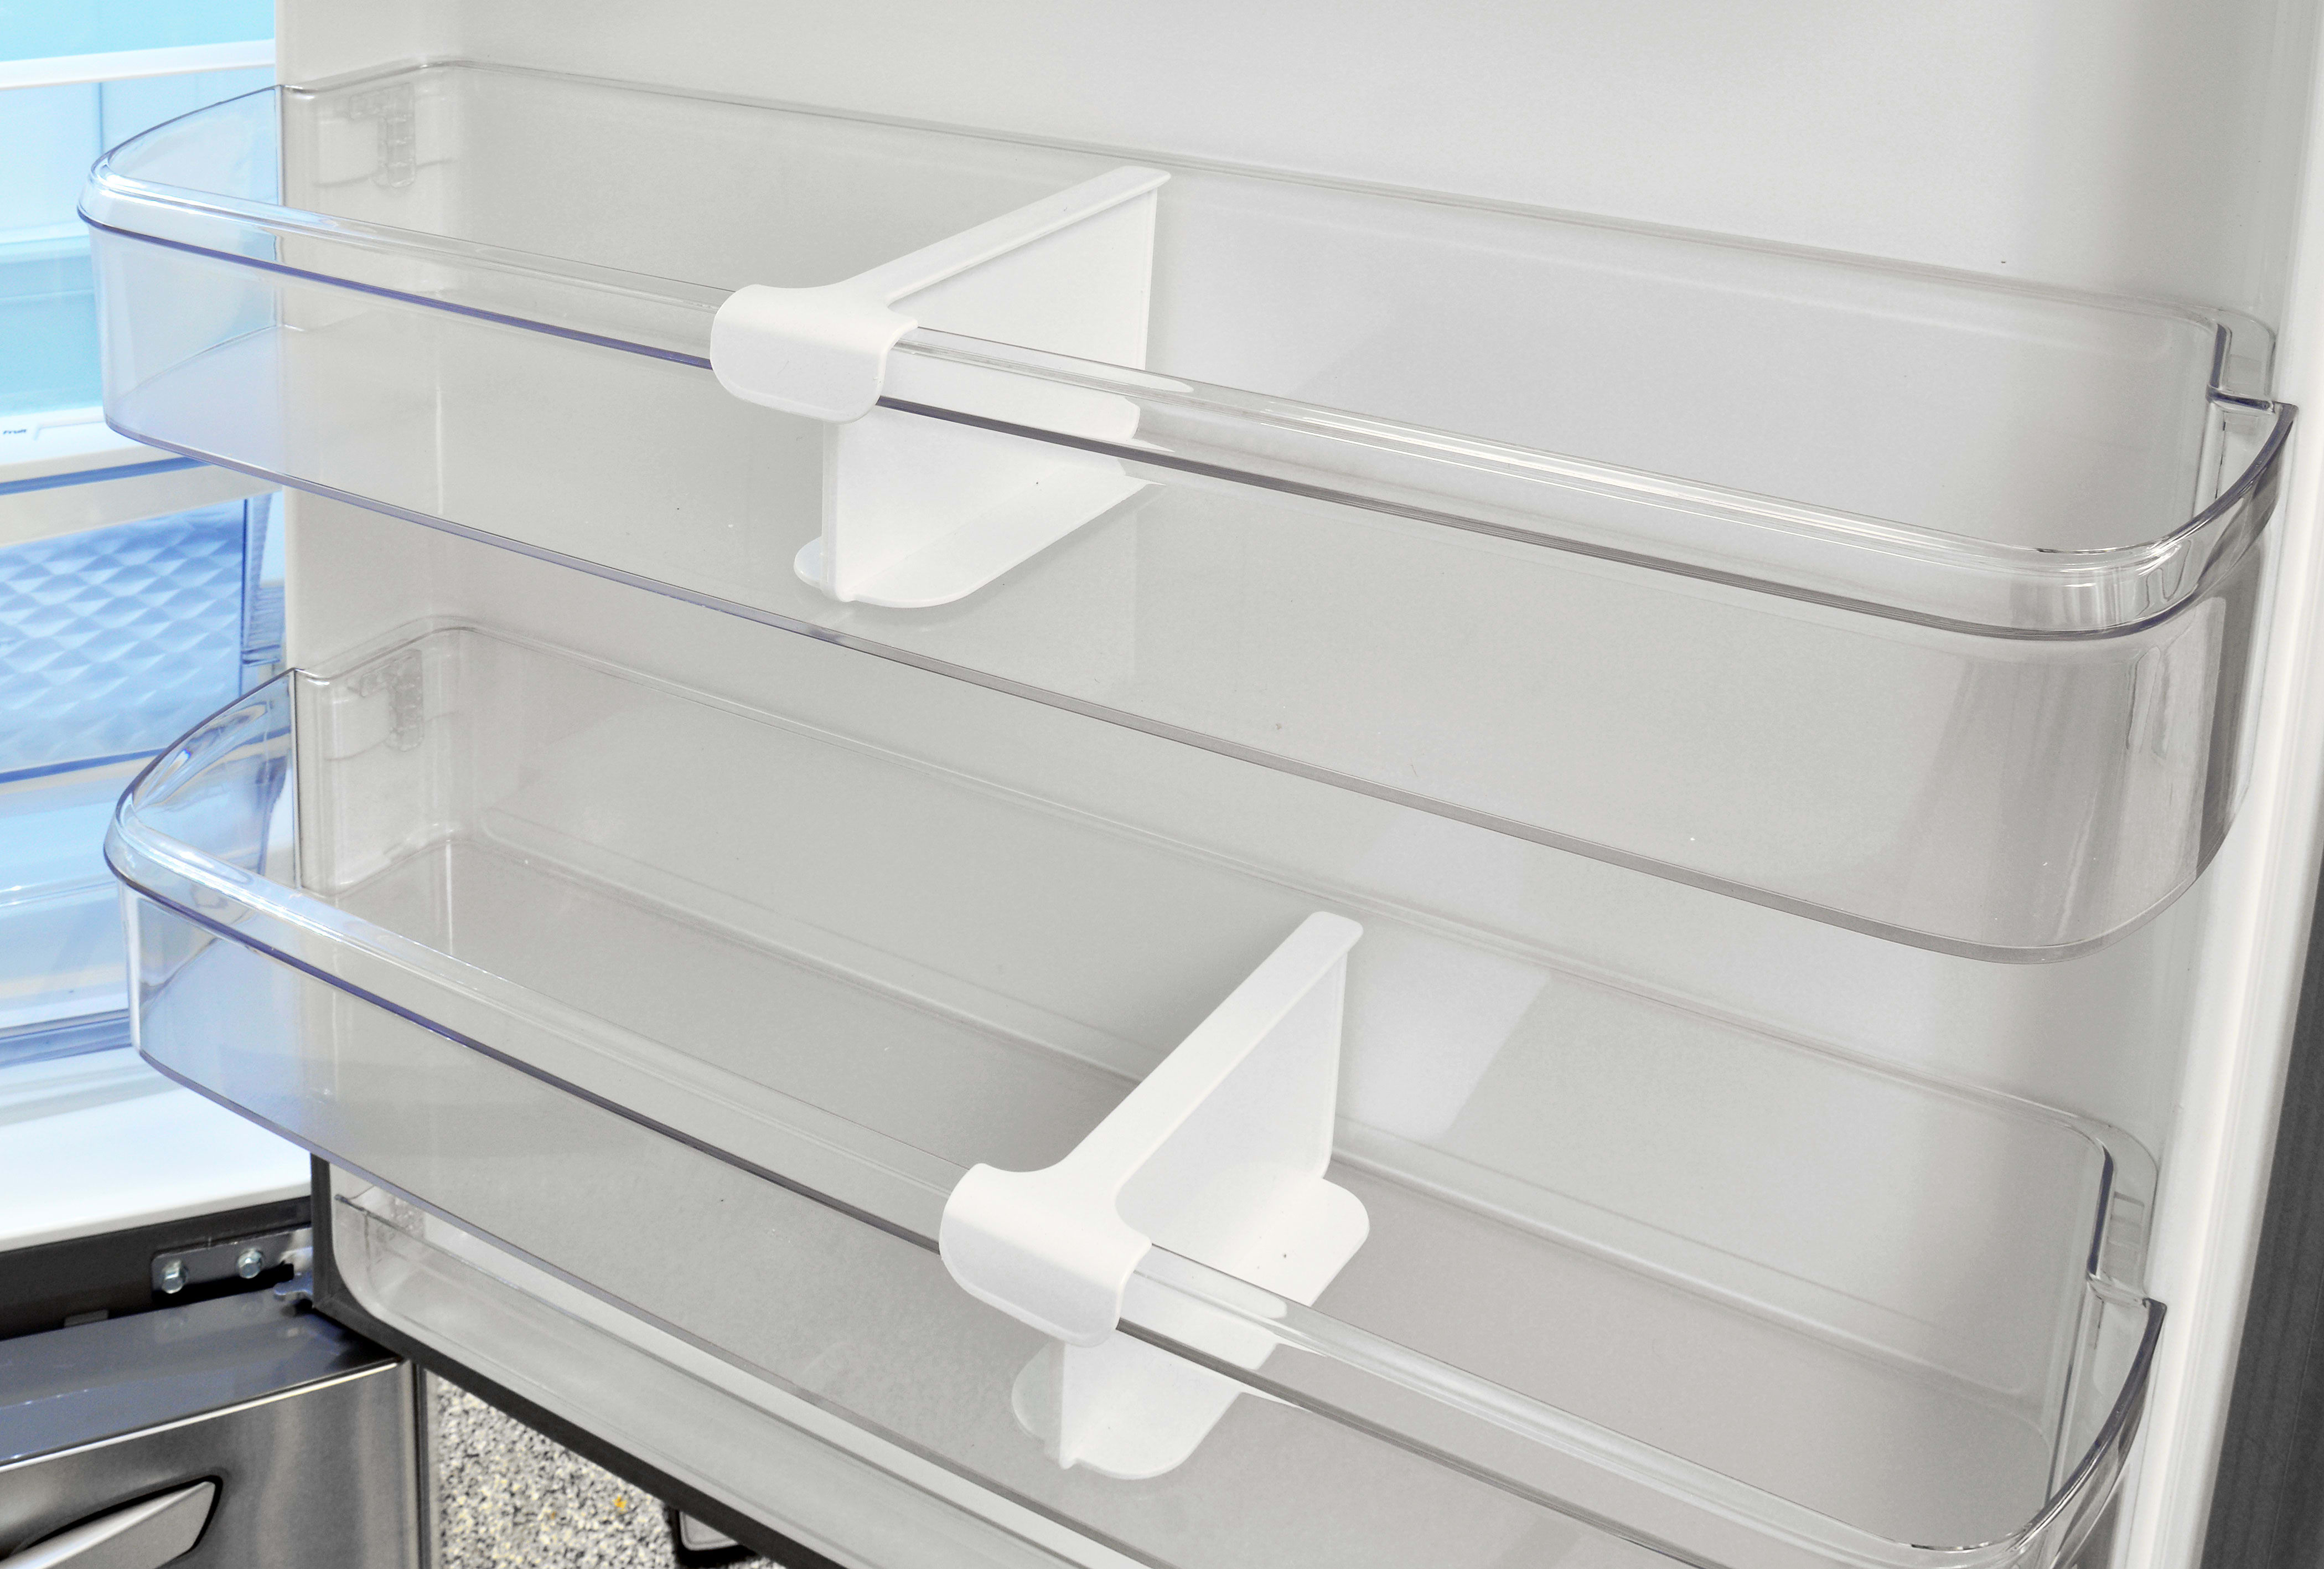 Removable plastic dividers can be slid left or right to help organize the LG LDC24370ST's door storage.